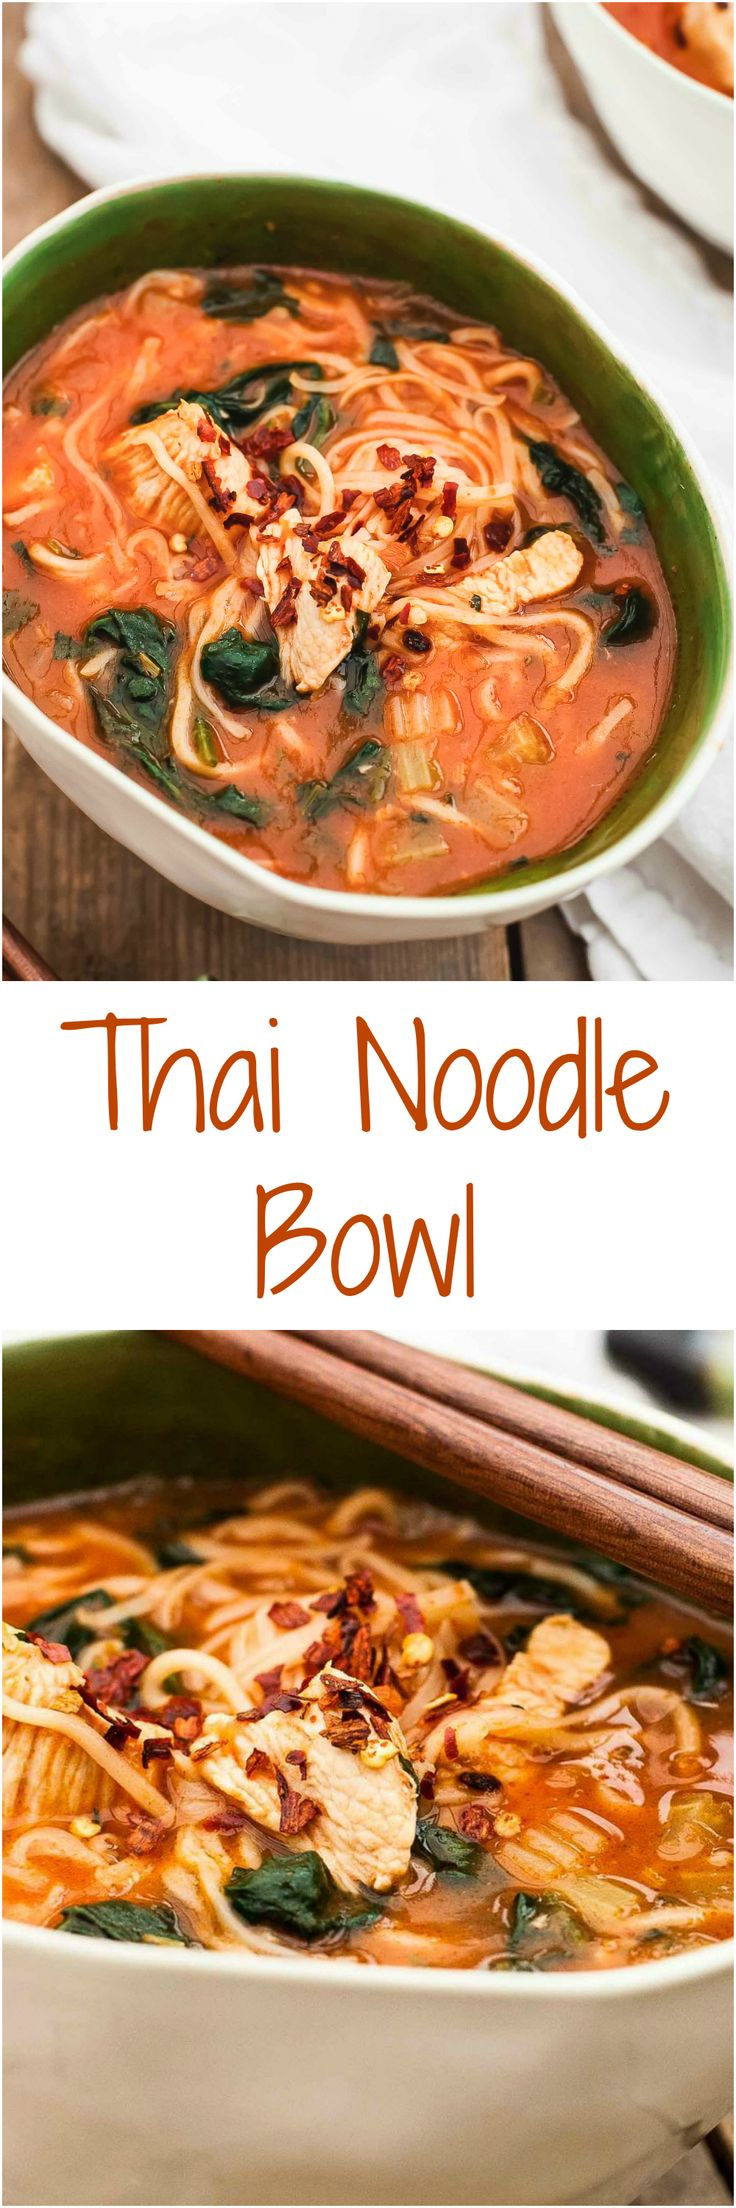 Delicious Chicken Noodle Soup with a Thai twist